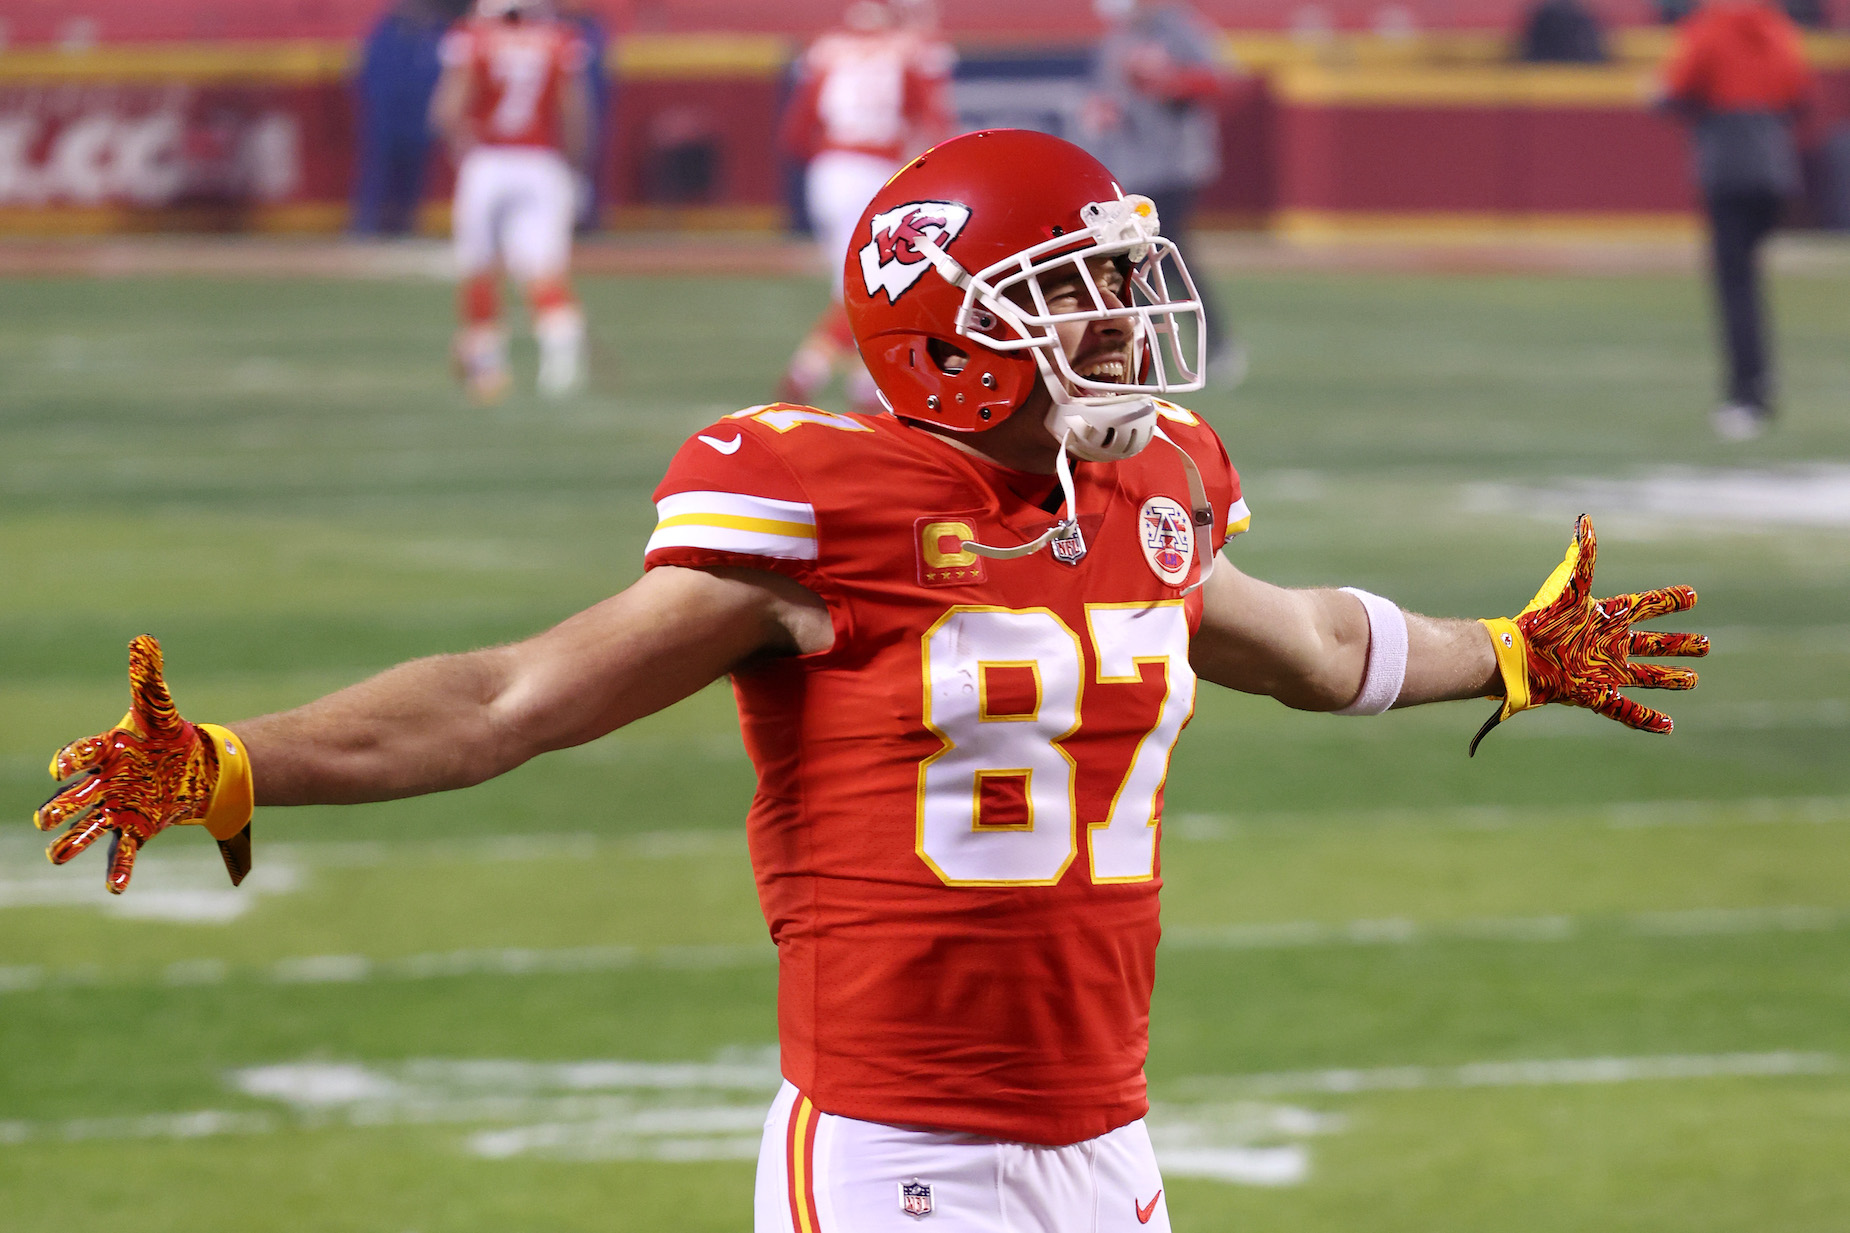 Tight end Travis Kelce reacts on the field during a Kansas City Chiefs game.